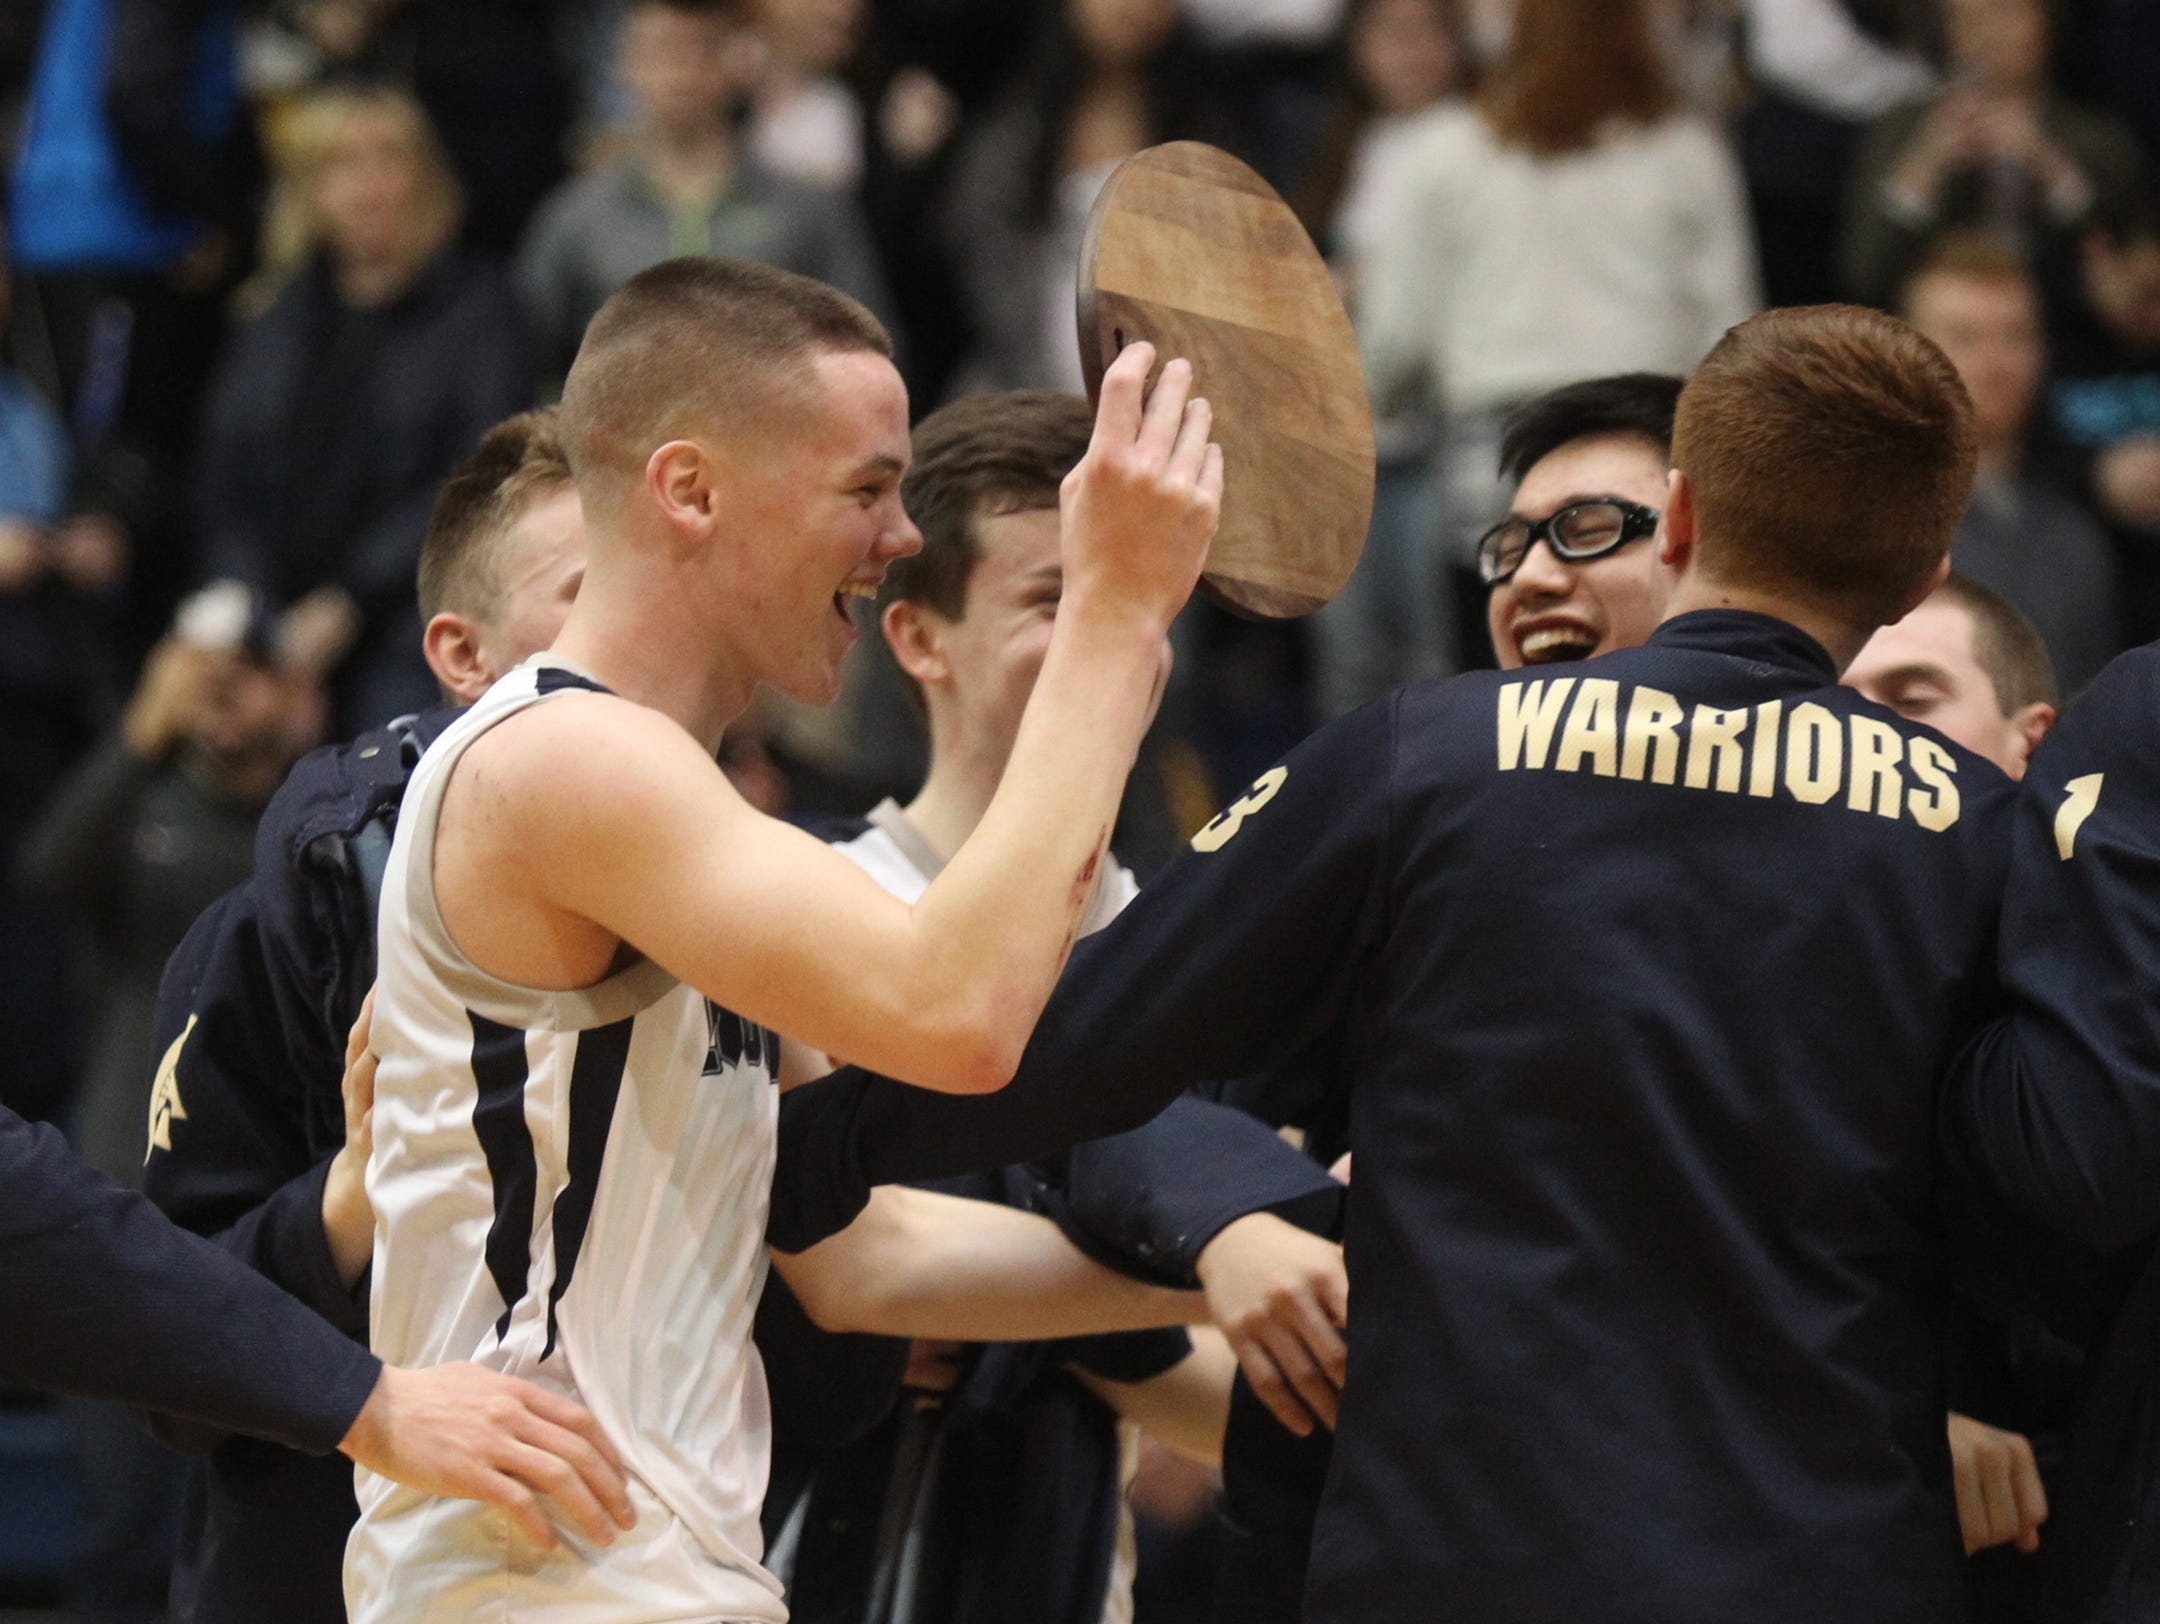 Our Lady of Lourdes' Aidan Hilderbrand (5) reacts after defeating Poughkeepsie 61-46 in the boys NYSPHSAA Class A regional final at Pace University's Goldstein Center in Pleasantville on Saturday, March 11, 2017.